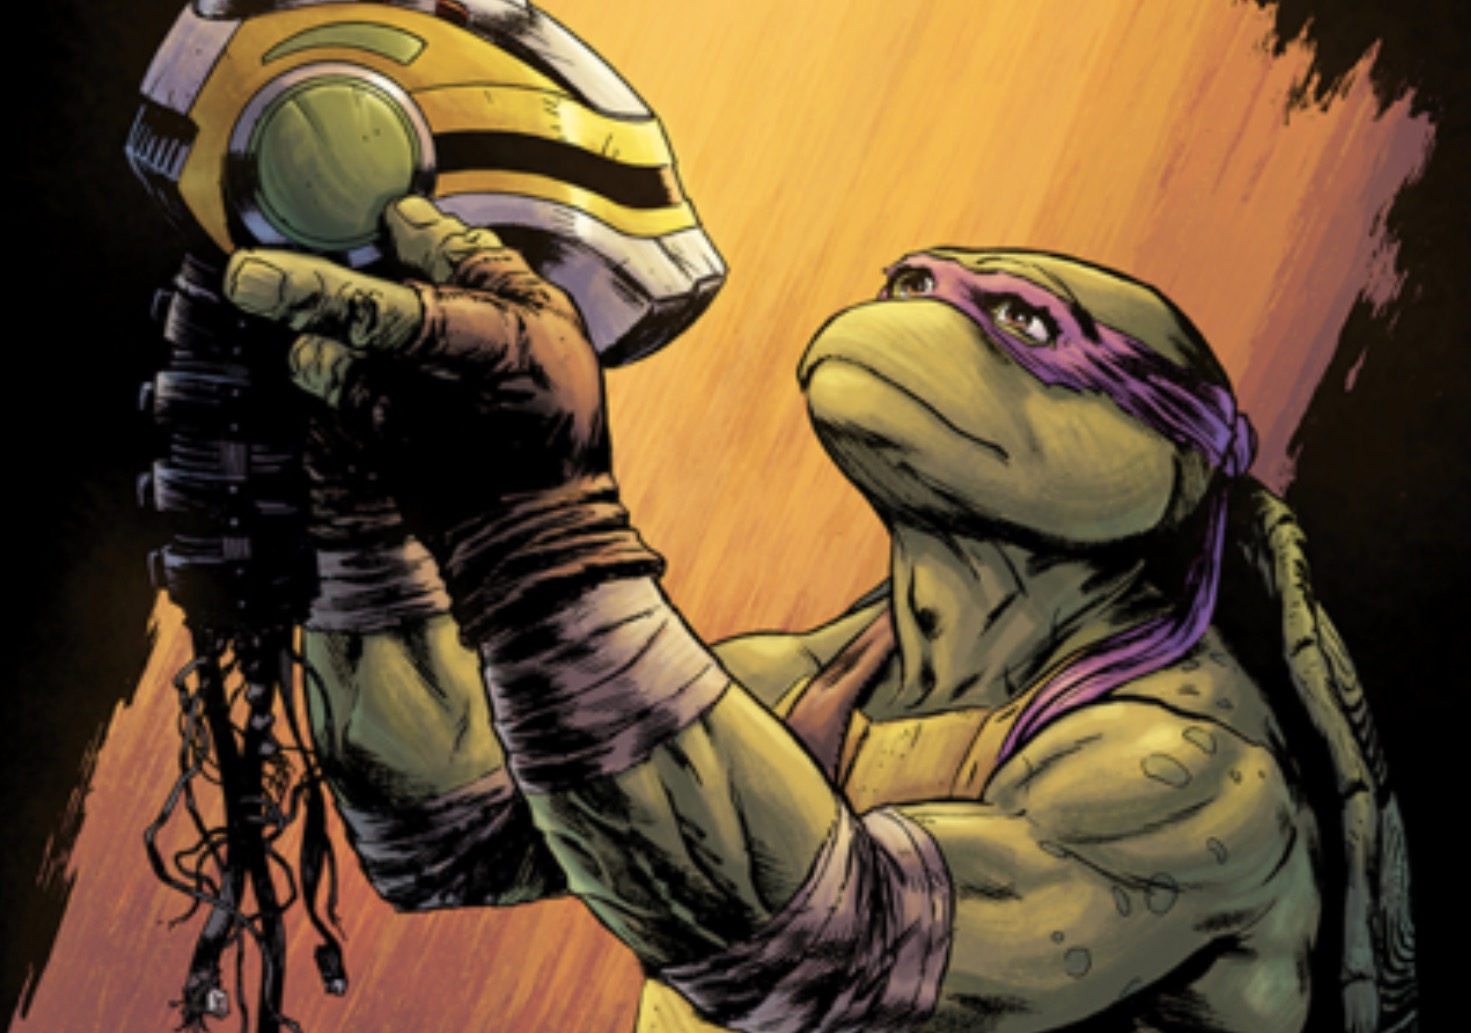 Teenage Mutant Ninja Turtles Universe #7 Review